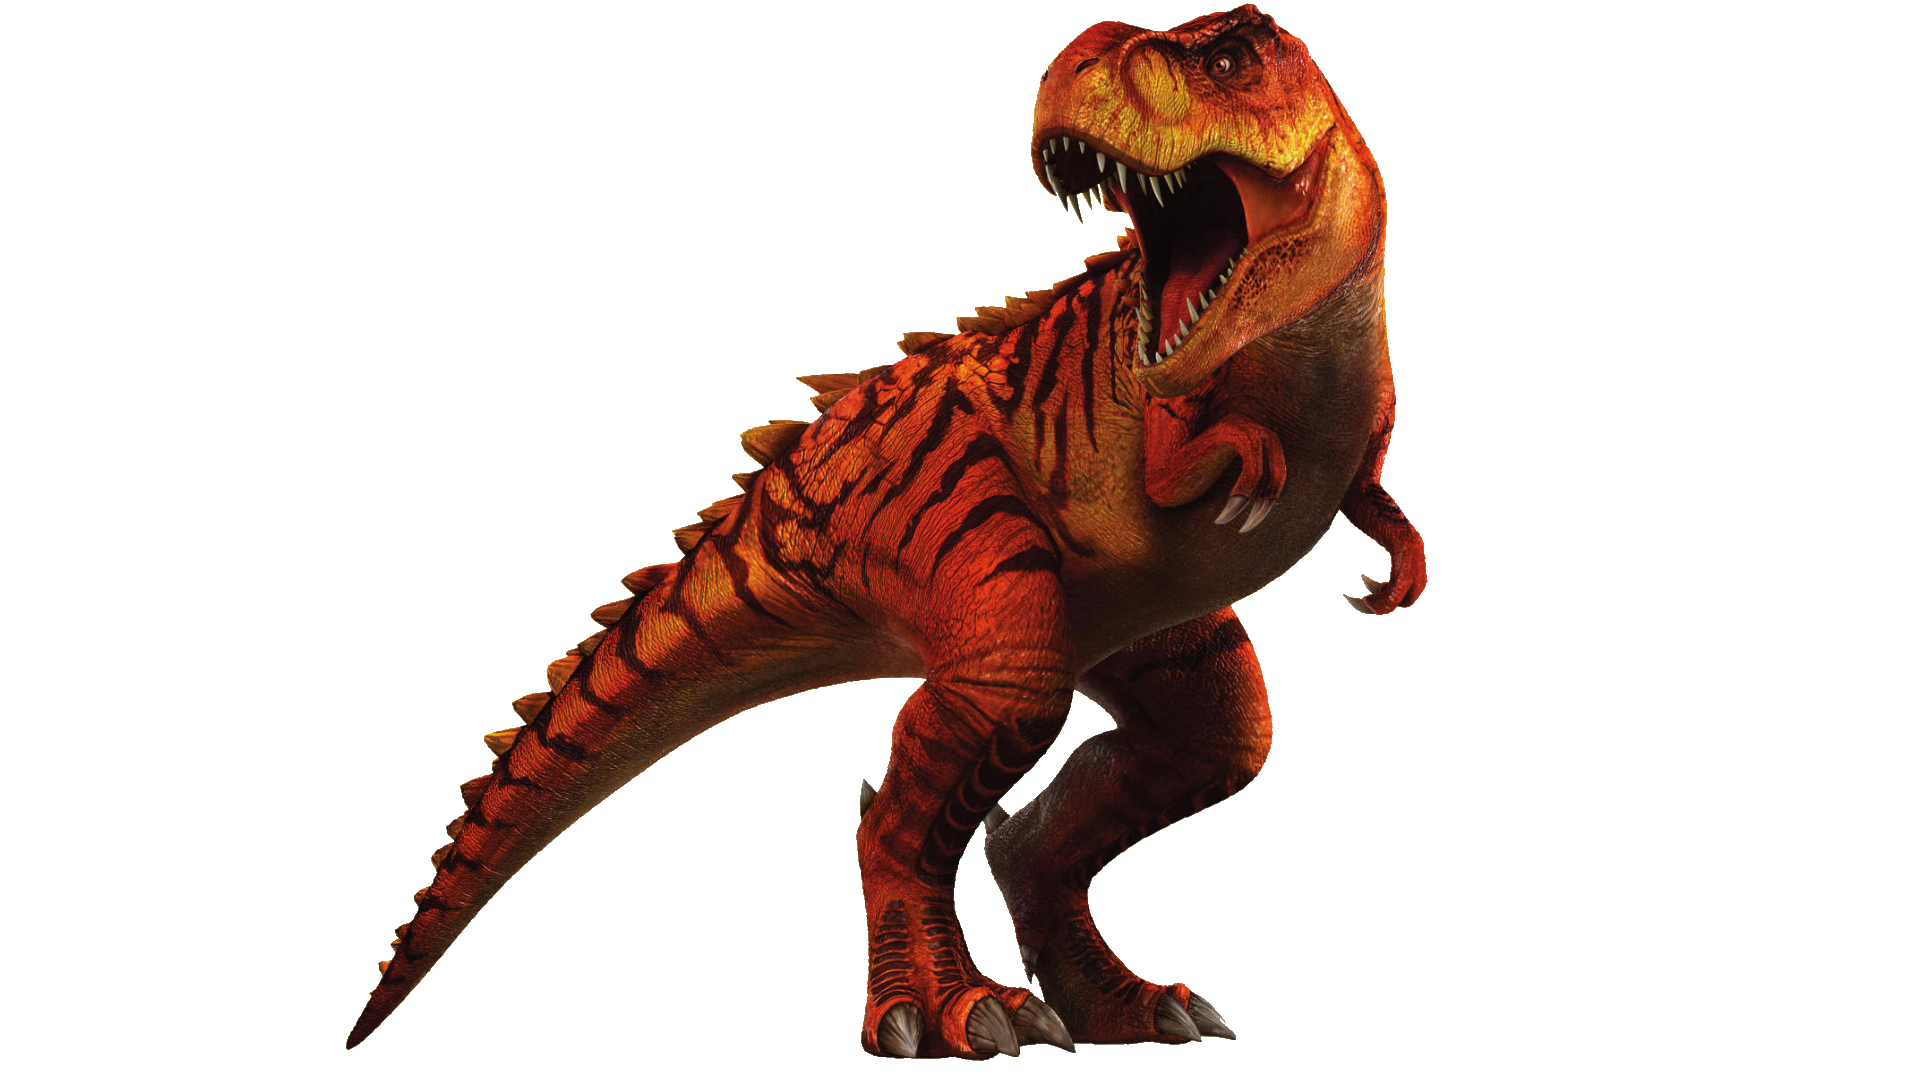 Jurassic world the game hybrid t rex by sonichedgehog2 on for Tyranosaurus rex